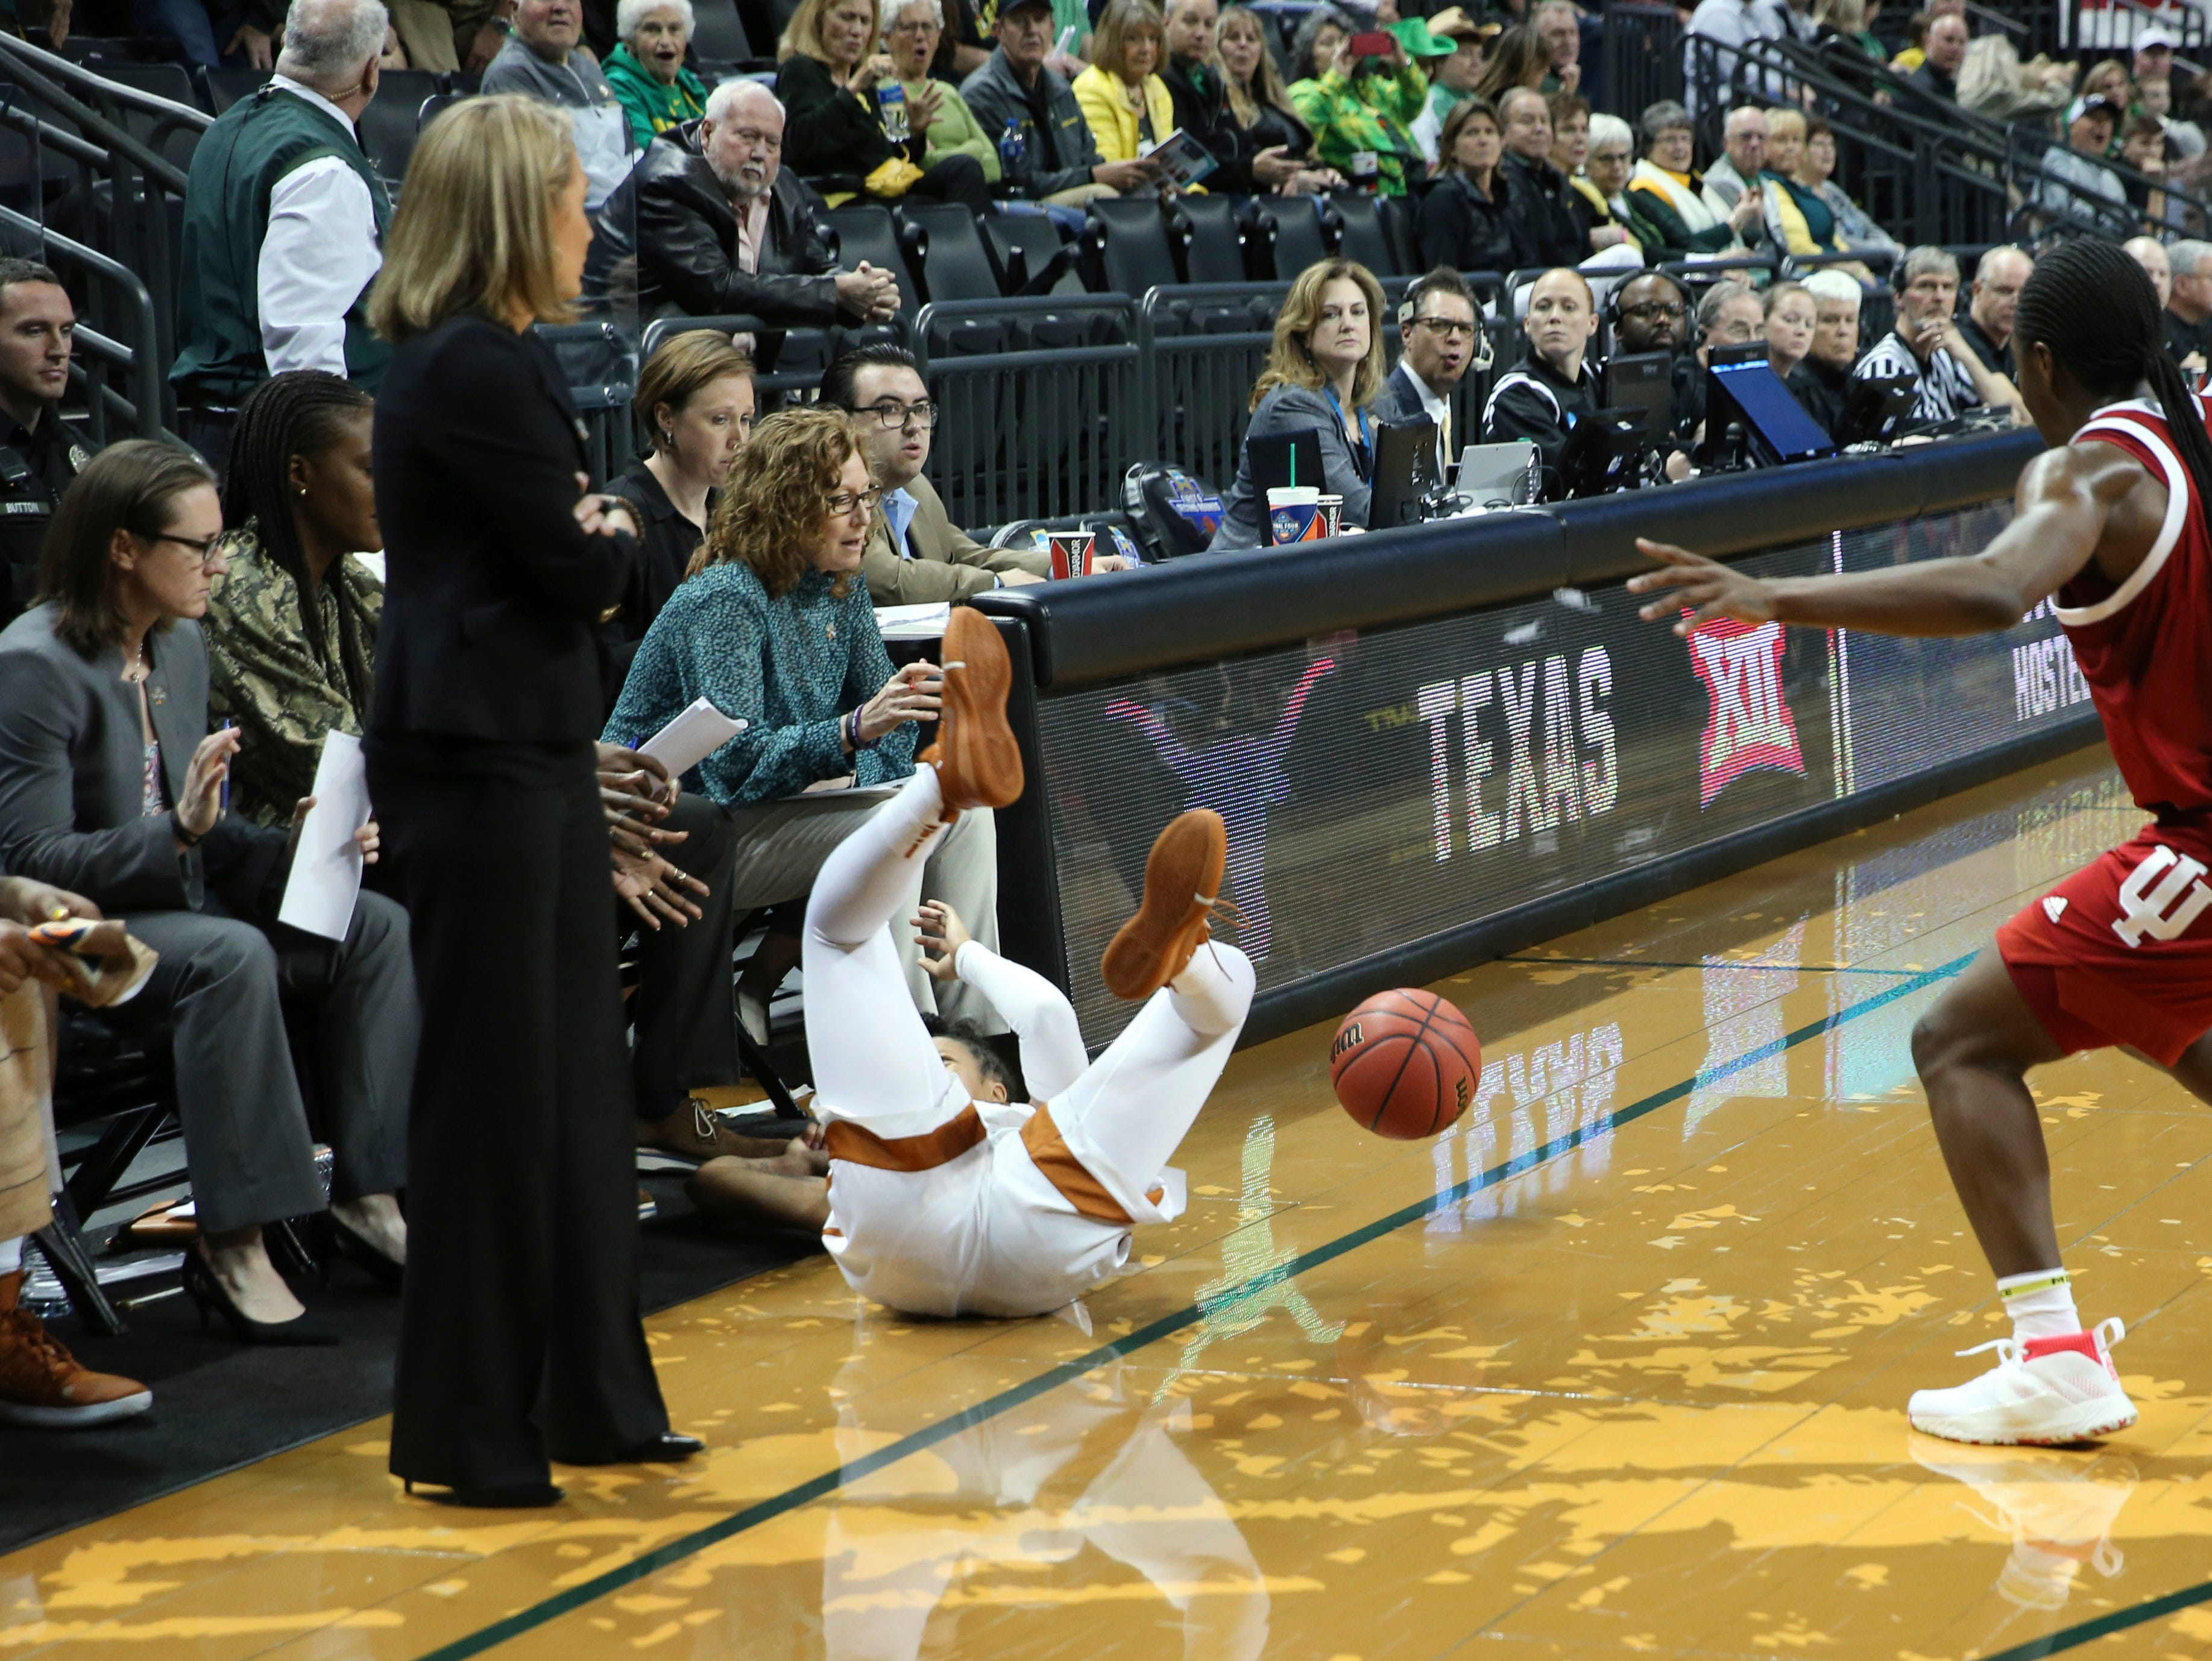 With Texas coach Karen Aston, left, watching, Texas' Sug Sutton, center, loses control of the ball under pressure from Indiana's Bendu Yeaney, right, at the end of a first-round game in the NCAA women's college basketball tournament Friday, March 22, 2019, in Eugene, Ore. (AP Photo/Chris Pietsch)